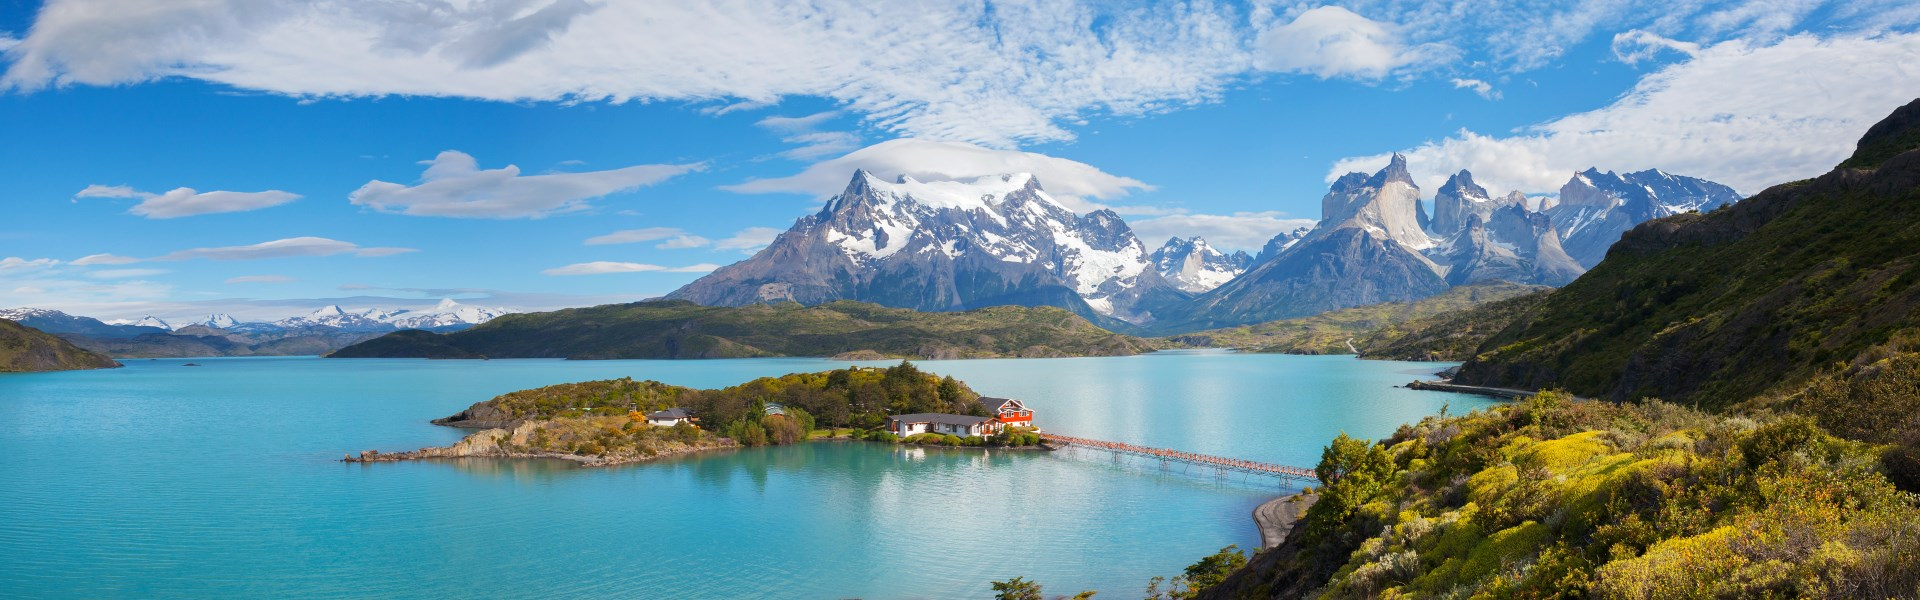 Views over Chile's Torres Del Paine